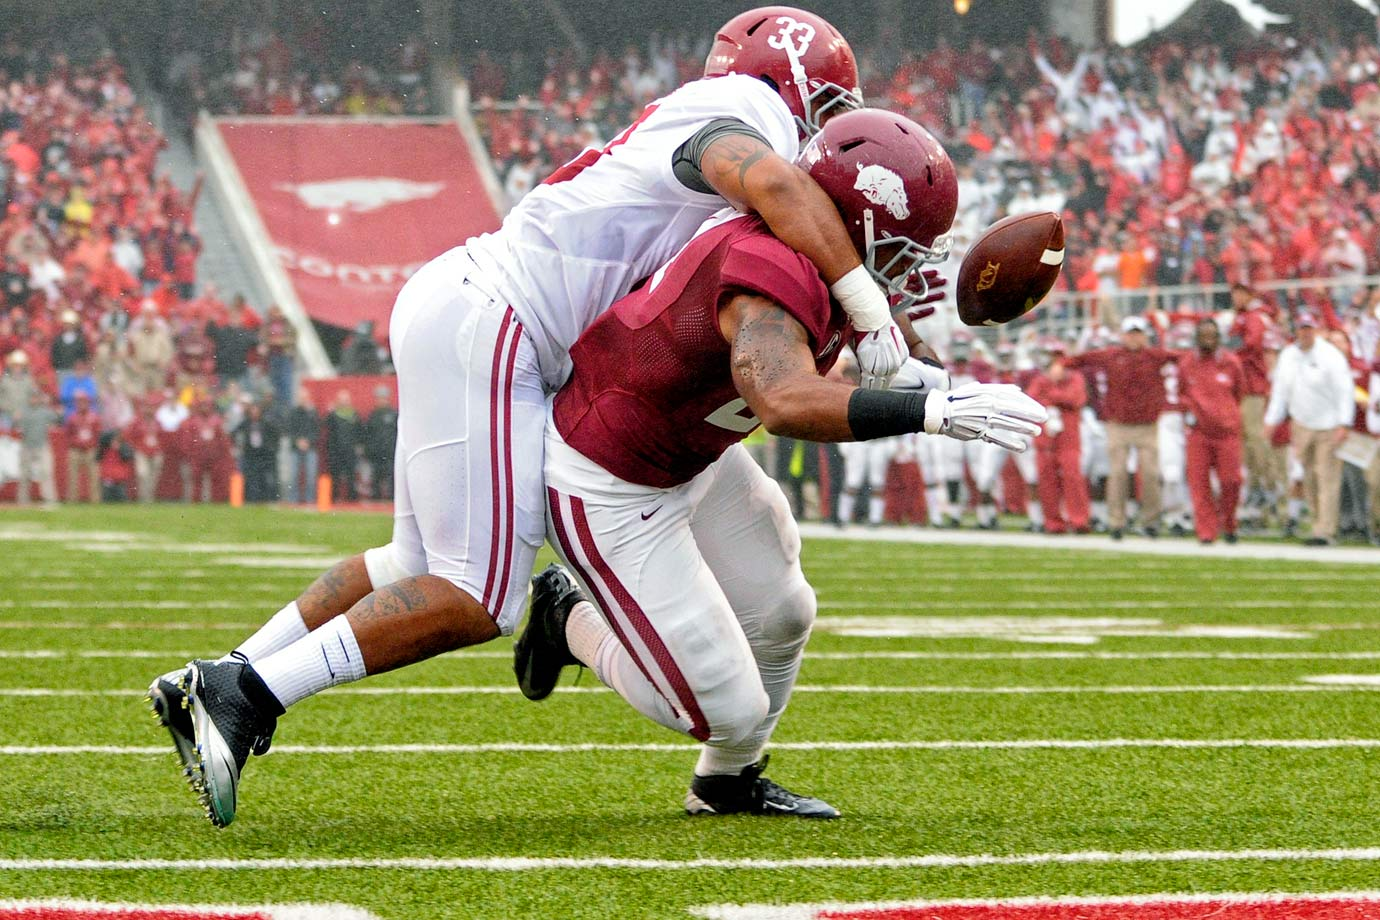 It wasn't pretty, but Bama held off Arkansas to avoid consecutive losses. Trey DePriest forced a key fumble in the first quarter, and Landon Collins made a crucial interception in the fourth.